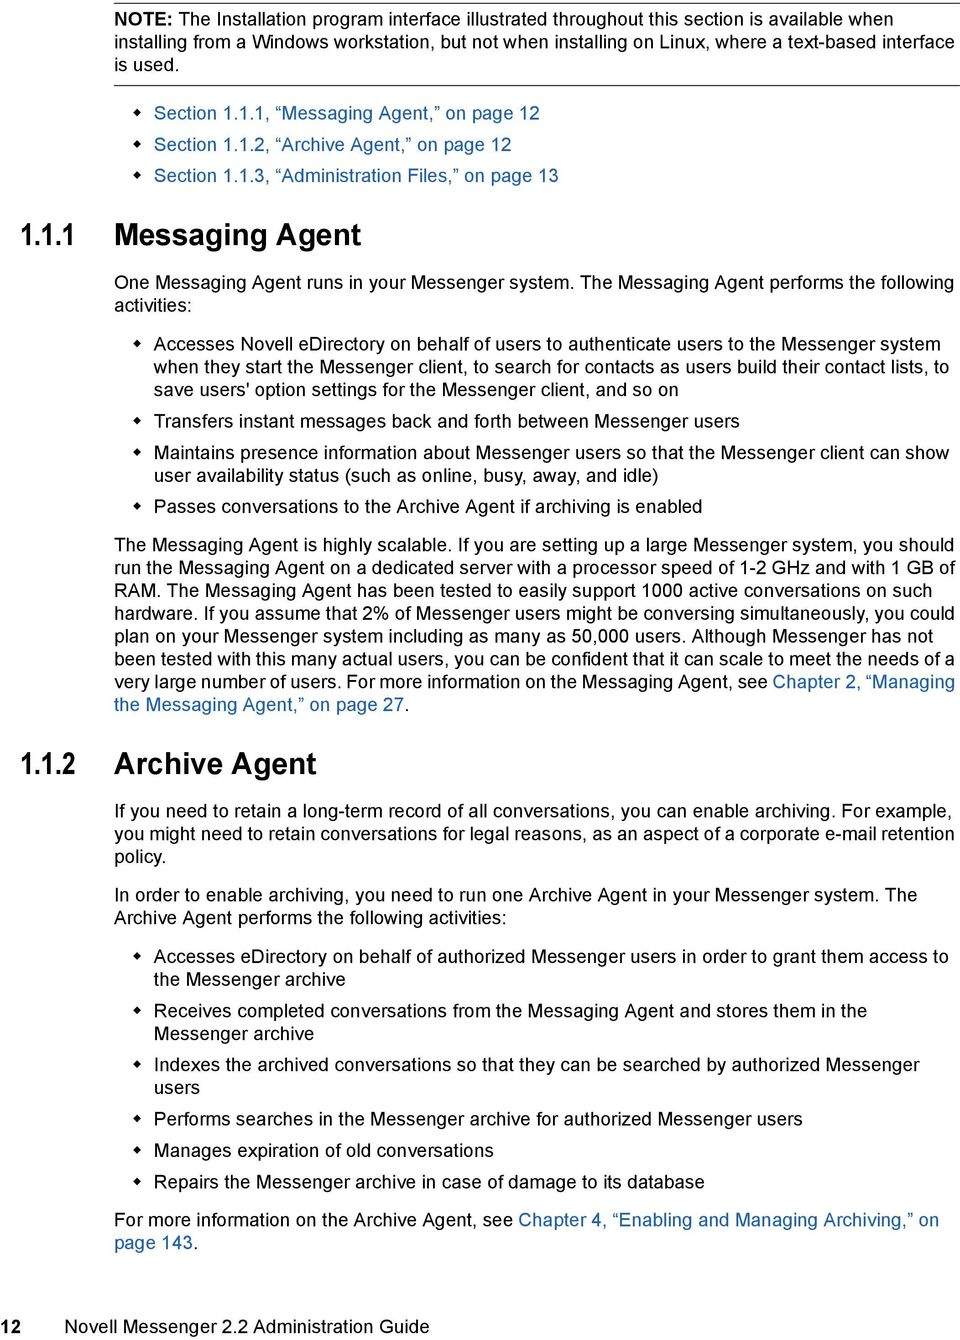 The Messaging Agent performs the following activities: Accesses Novell edirectory on behalf of users to authenticate users to the Messenger system when they start the Messenger client, to search for